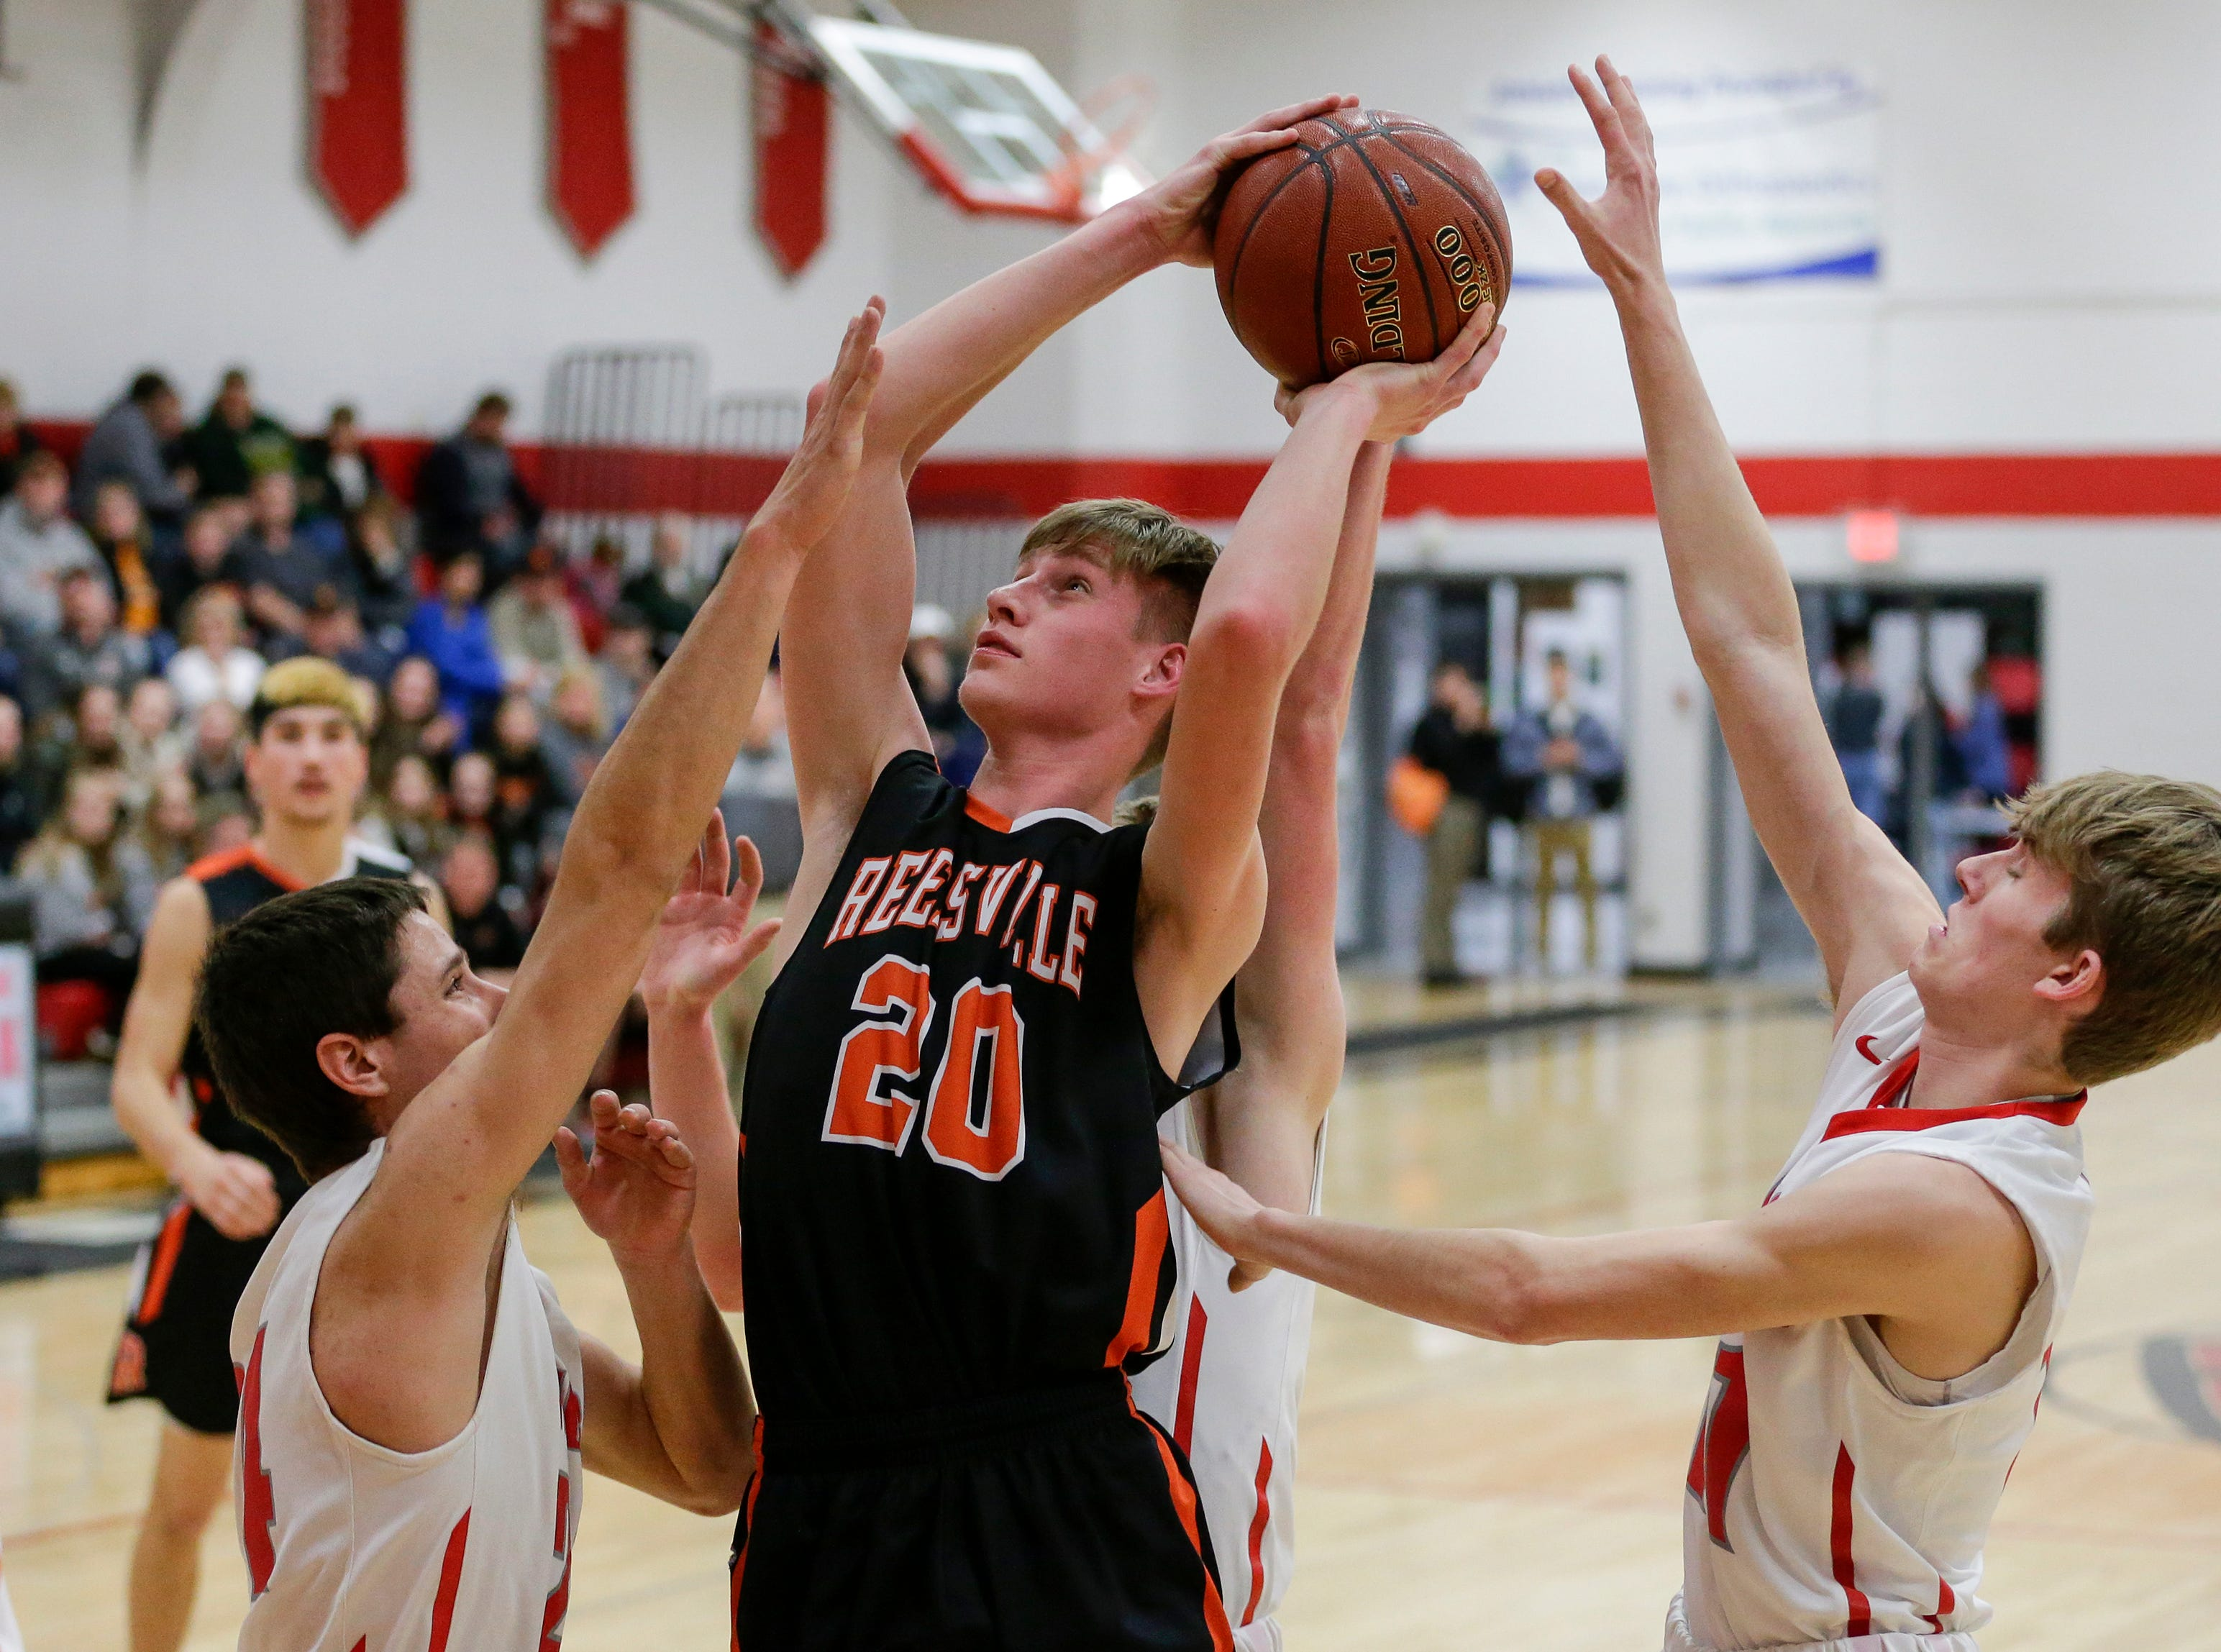 Reedsville's Cade Hafkey goes up for a shot against Manitowoc Lutheran at Manitowoc Lutheran High School Thursday, December 20, 2018, in Manitowoc, Wis. Joshua Clark/USA TODAY NETWORK-Wisconsin